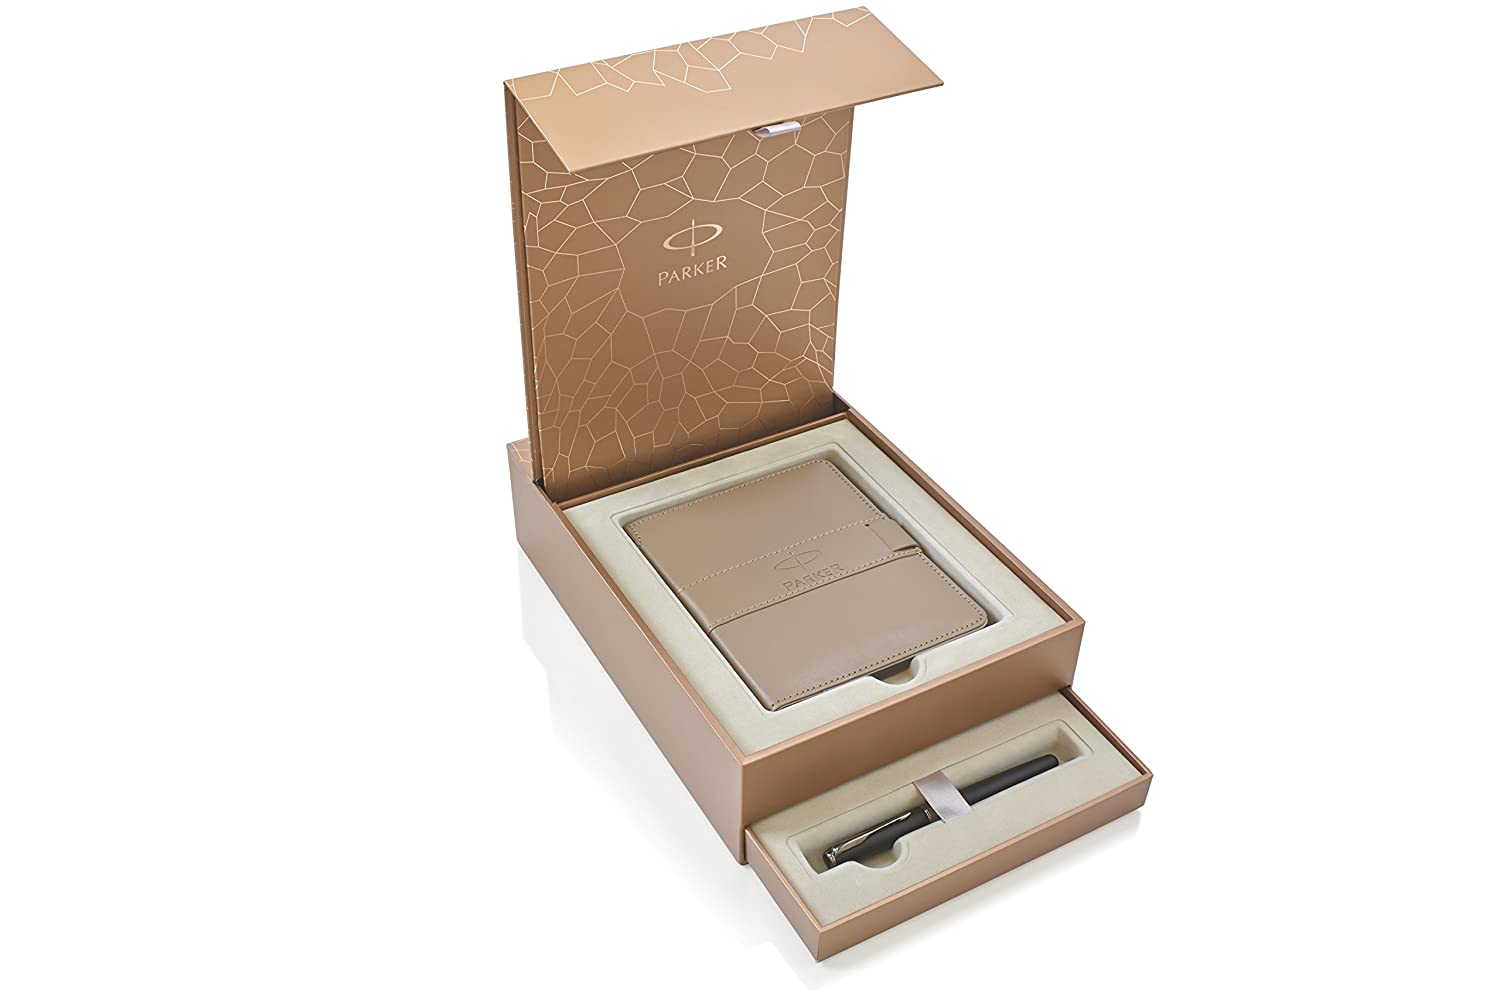 Parker Gift Set Ingenuity Slim Pearl Lacquer Pink Gold Trim 5th Technology Pen + Notebook and Notebook cover 1935166